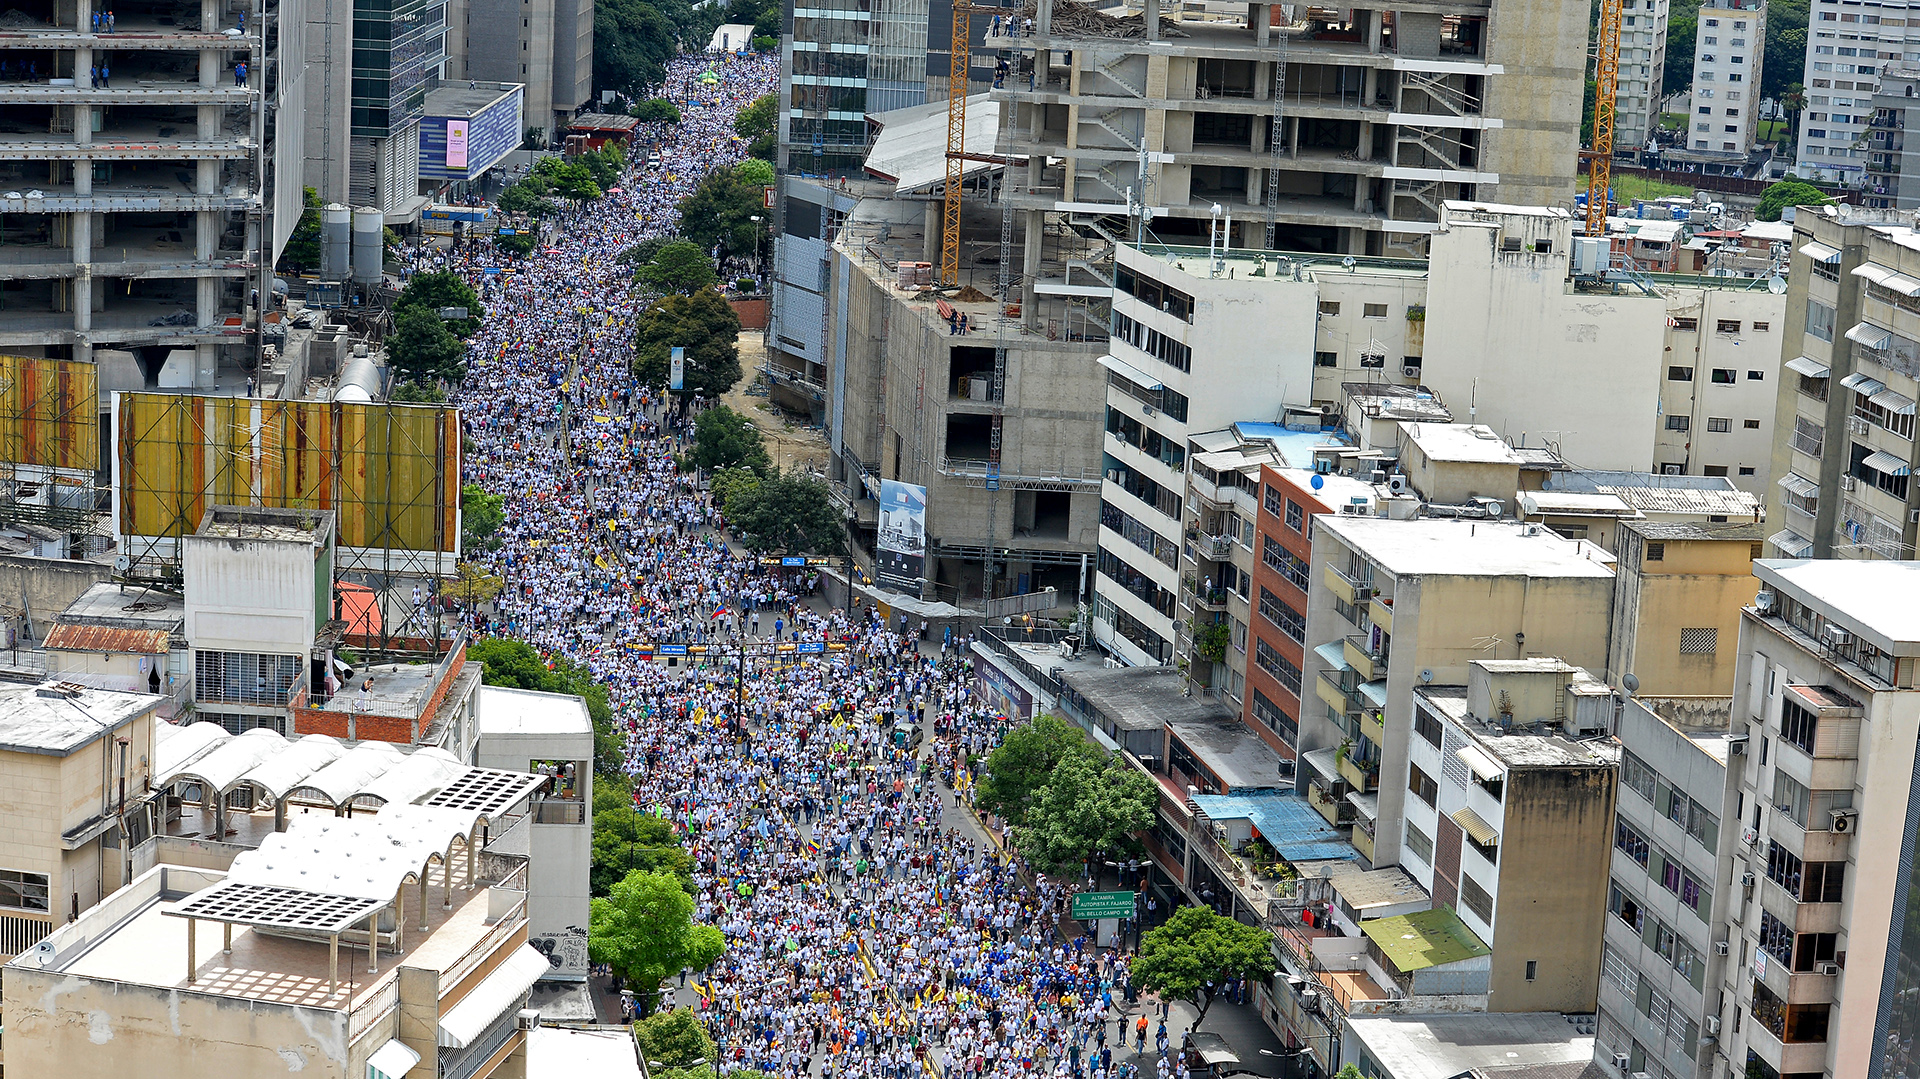 Opposition activists march in Caracas, on September 1, 2016. Venezuela's opposition and government head into a crucial test of strength Thursday with massive marches for and against a referendum to recall President Nicolas Maduro that have raised fears of a violent confrontation. / AFP PHOTO / FEDERICO PARRA